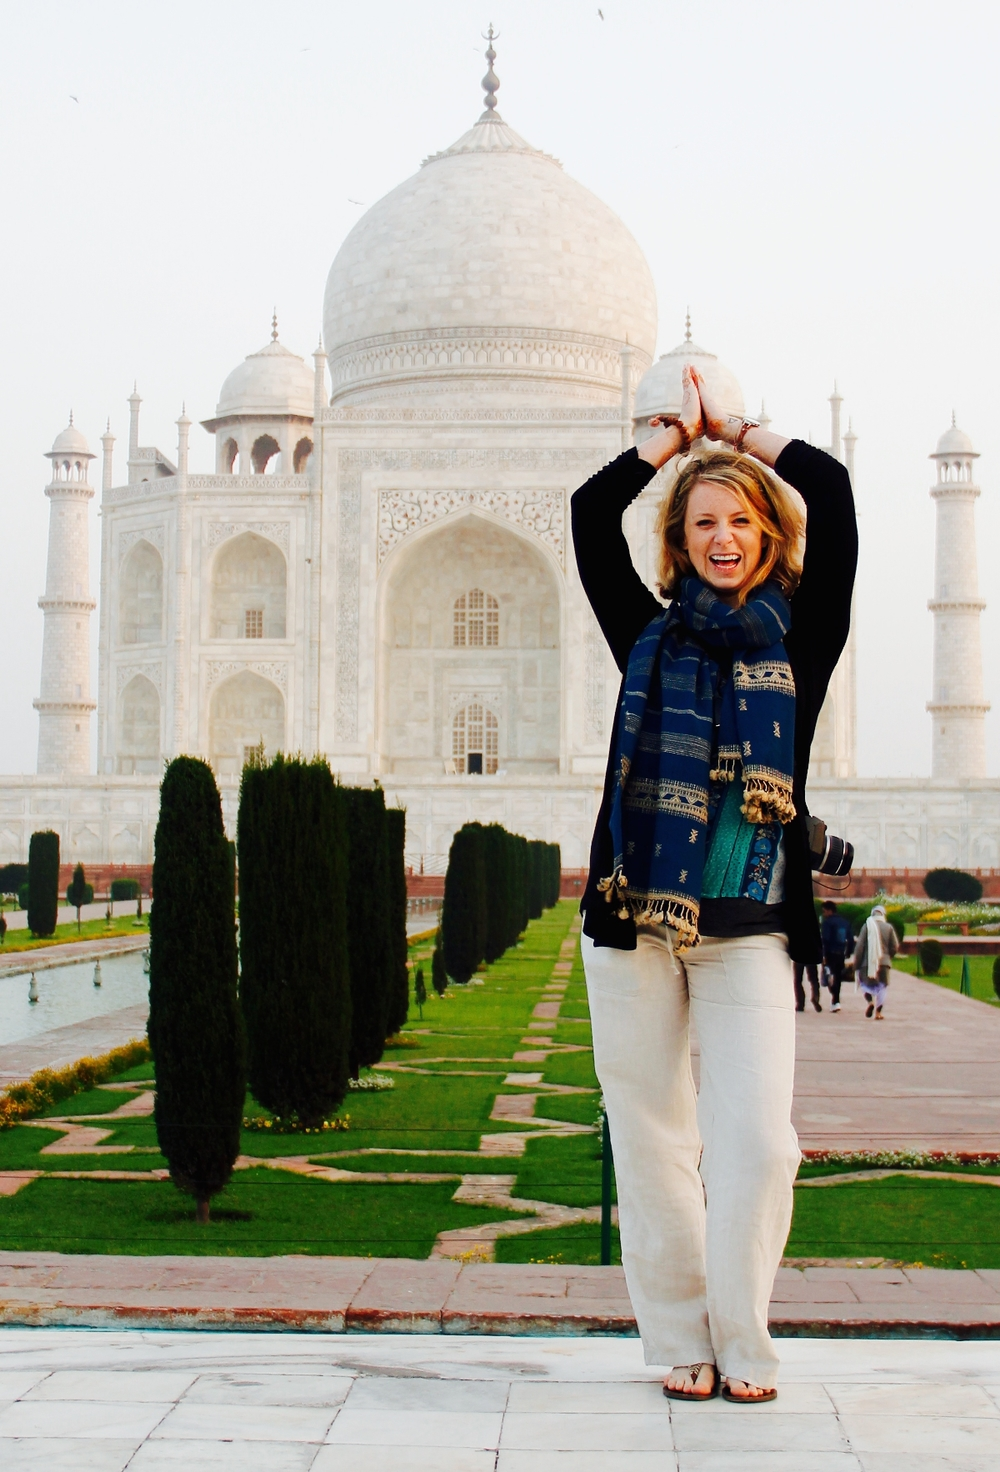 India.Agra.TajMahal.Hailey.jpg